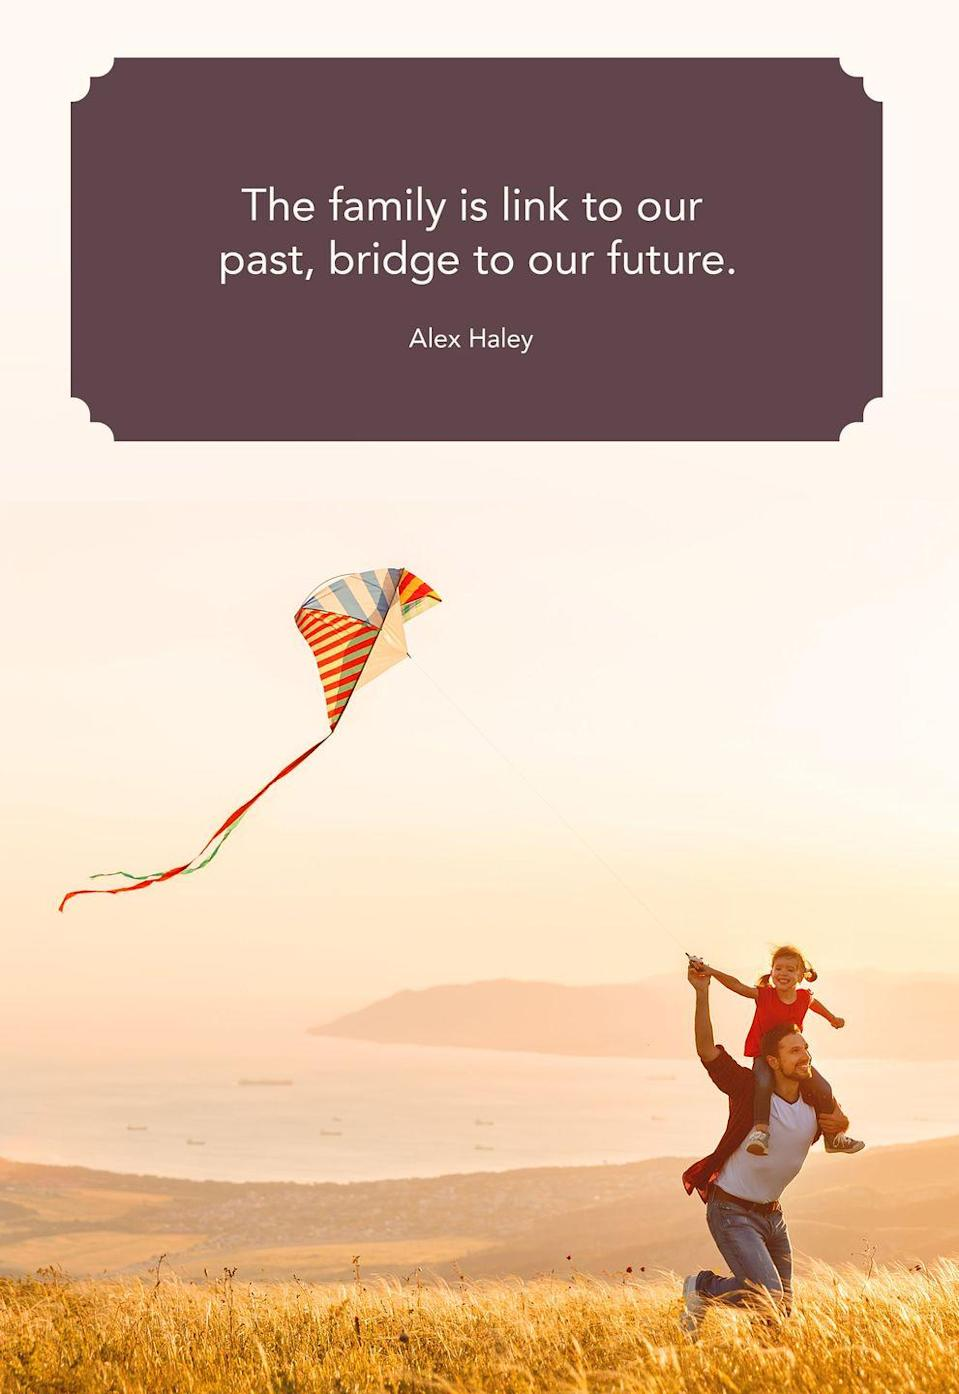 "<p>""The family is link to our past, bridge to our future.""</p>"